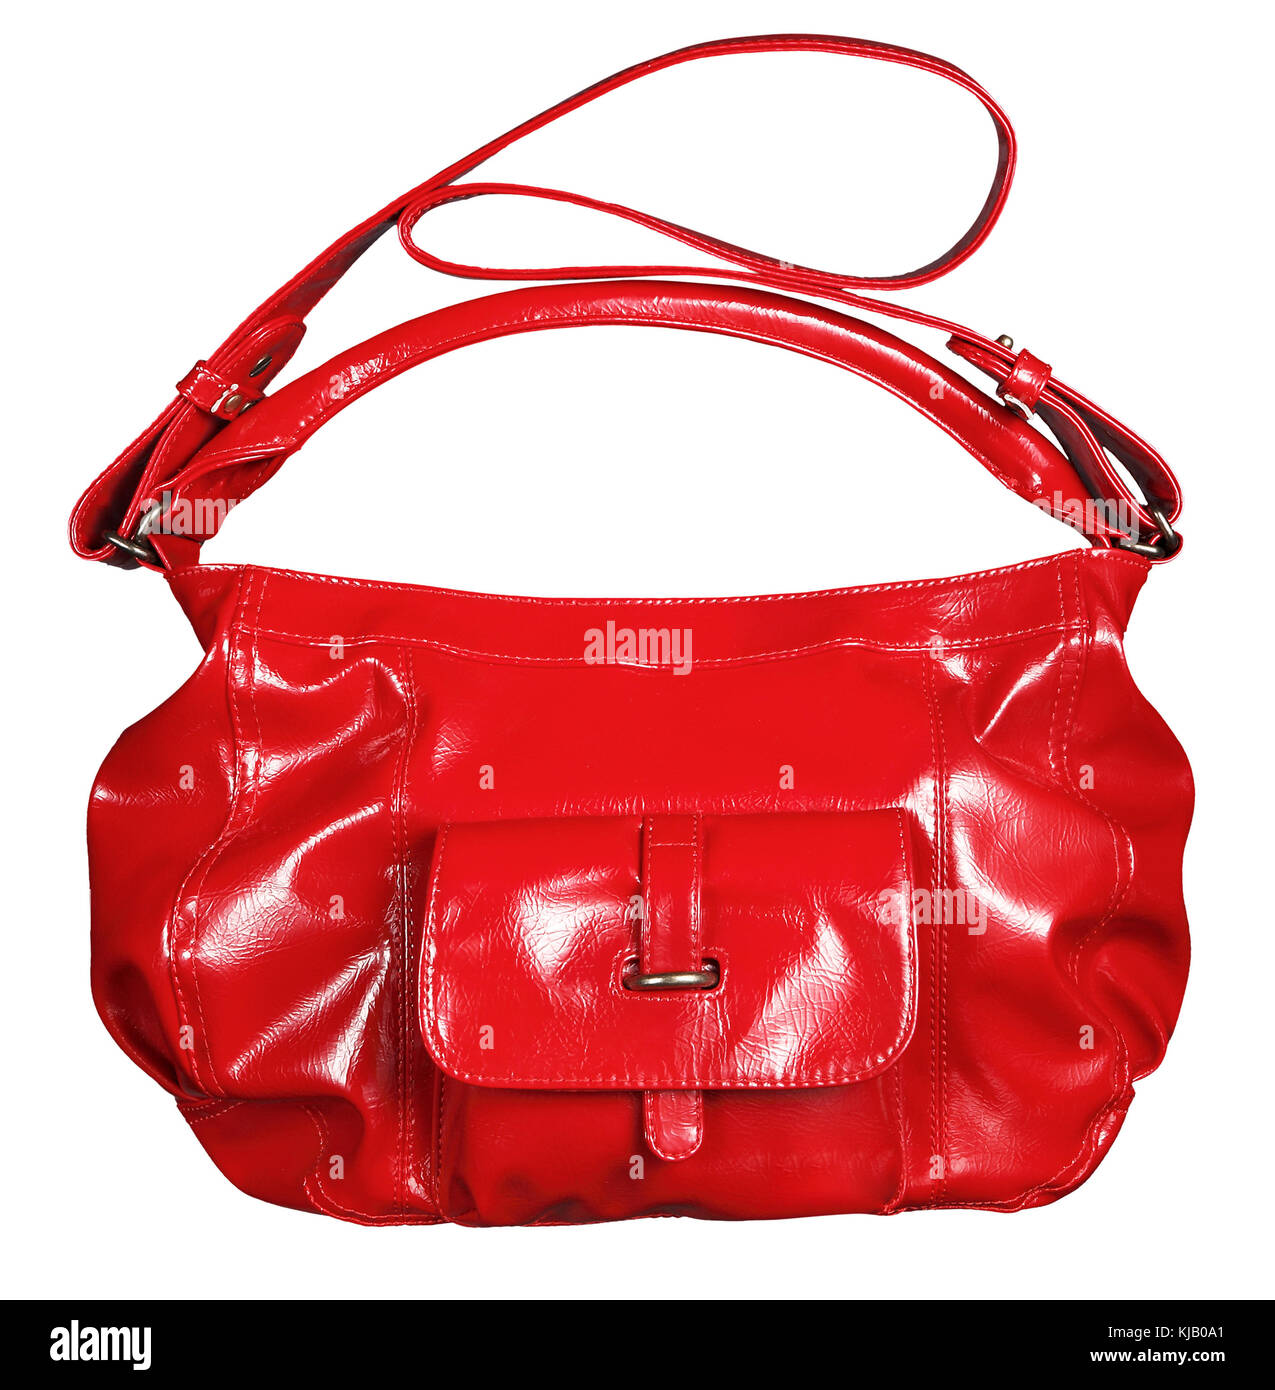 Bright red shiny patent leather handbag with dual carry and shoulder straps for an elegant female fashion accessory - Stock Image